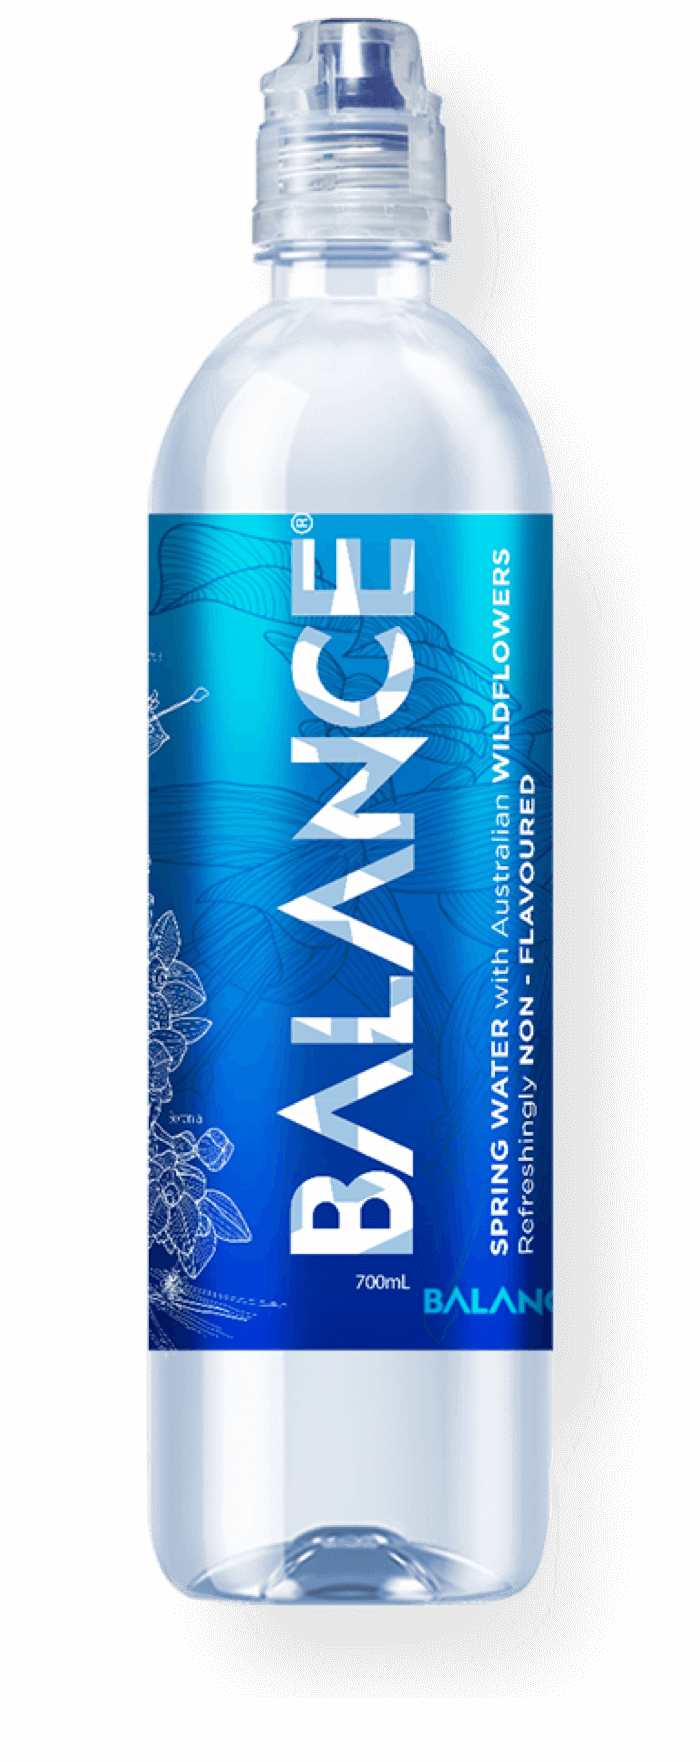 Balance sports water bottle